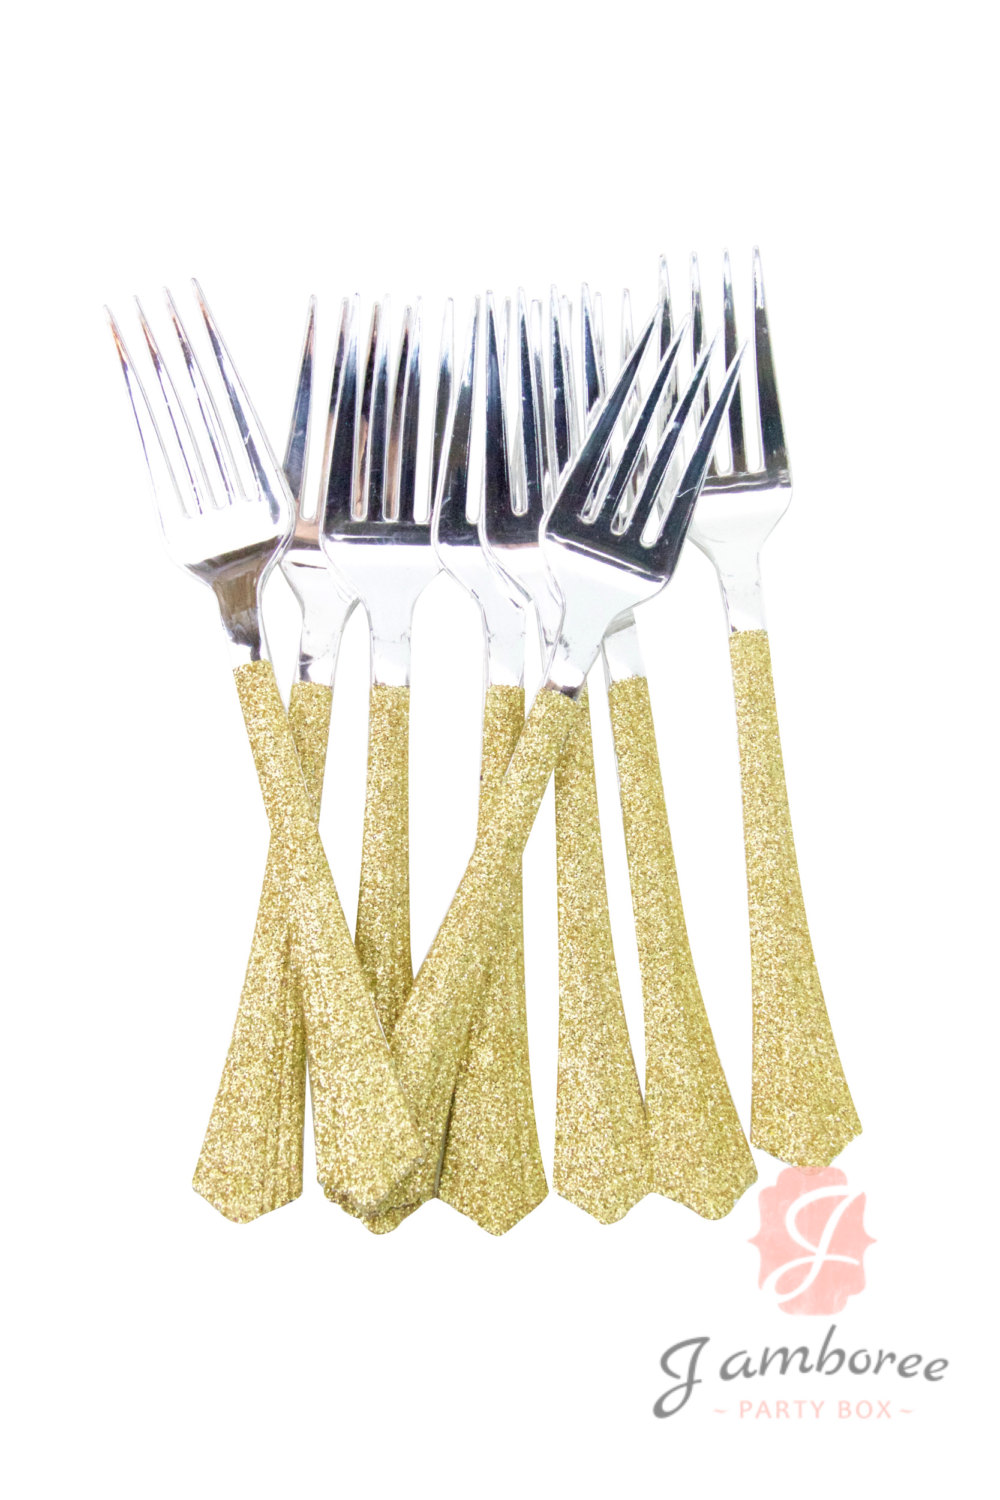 Enjoyable gold plastic silverware with glitters gold plastic silverware for serverware ideas